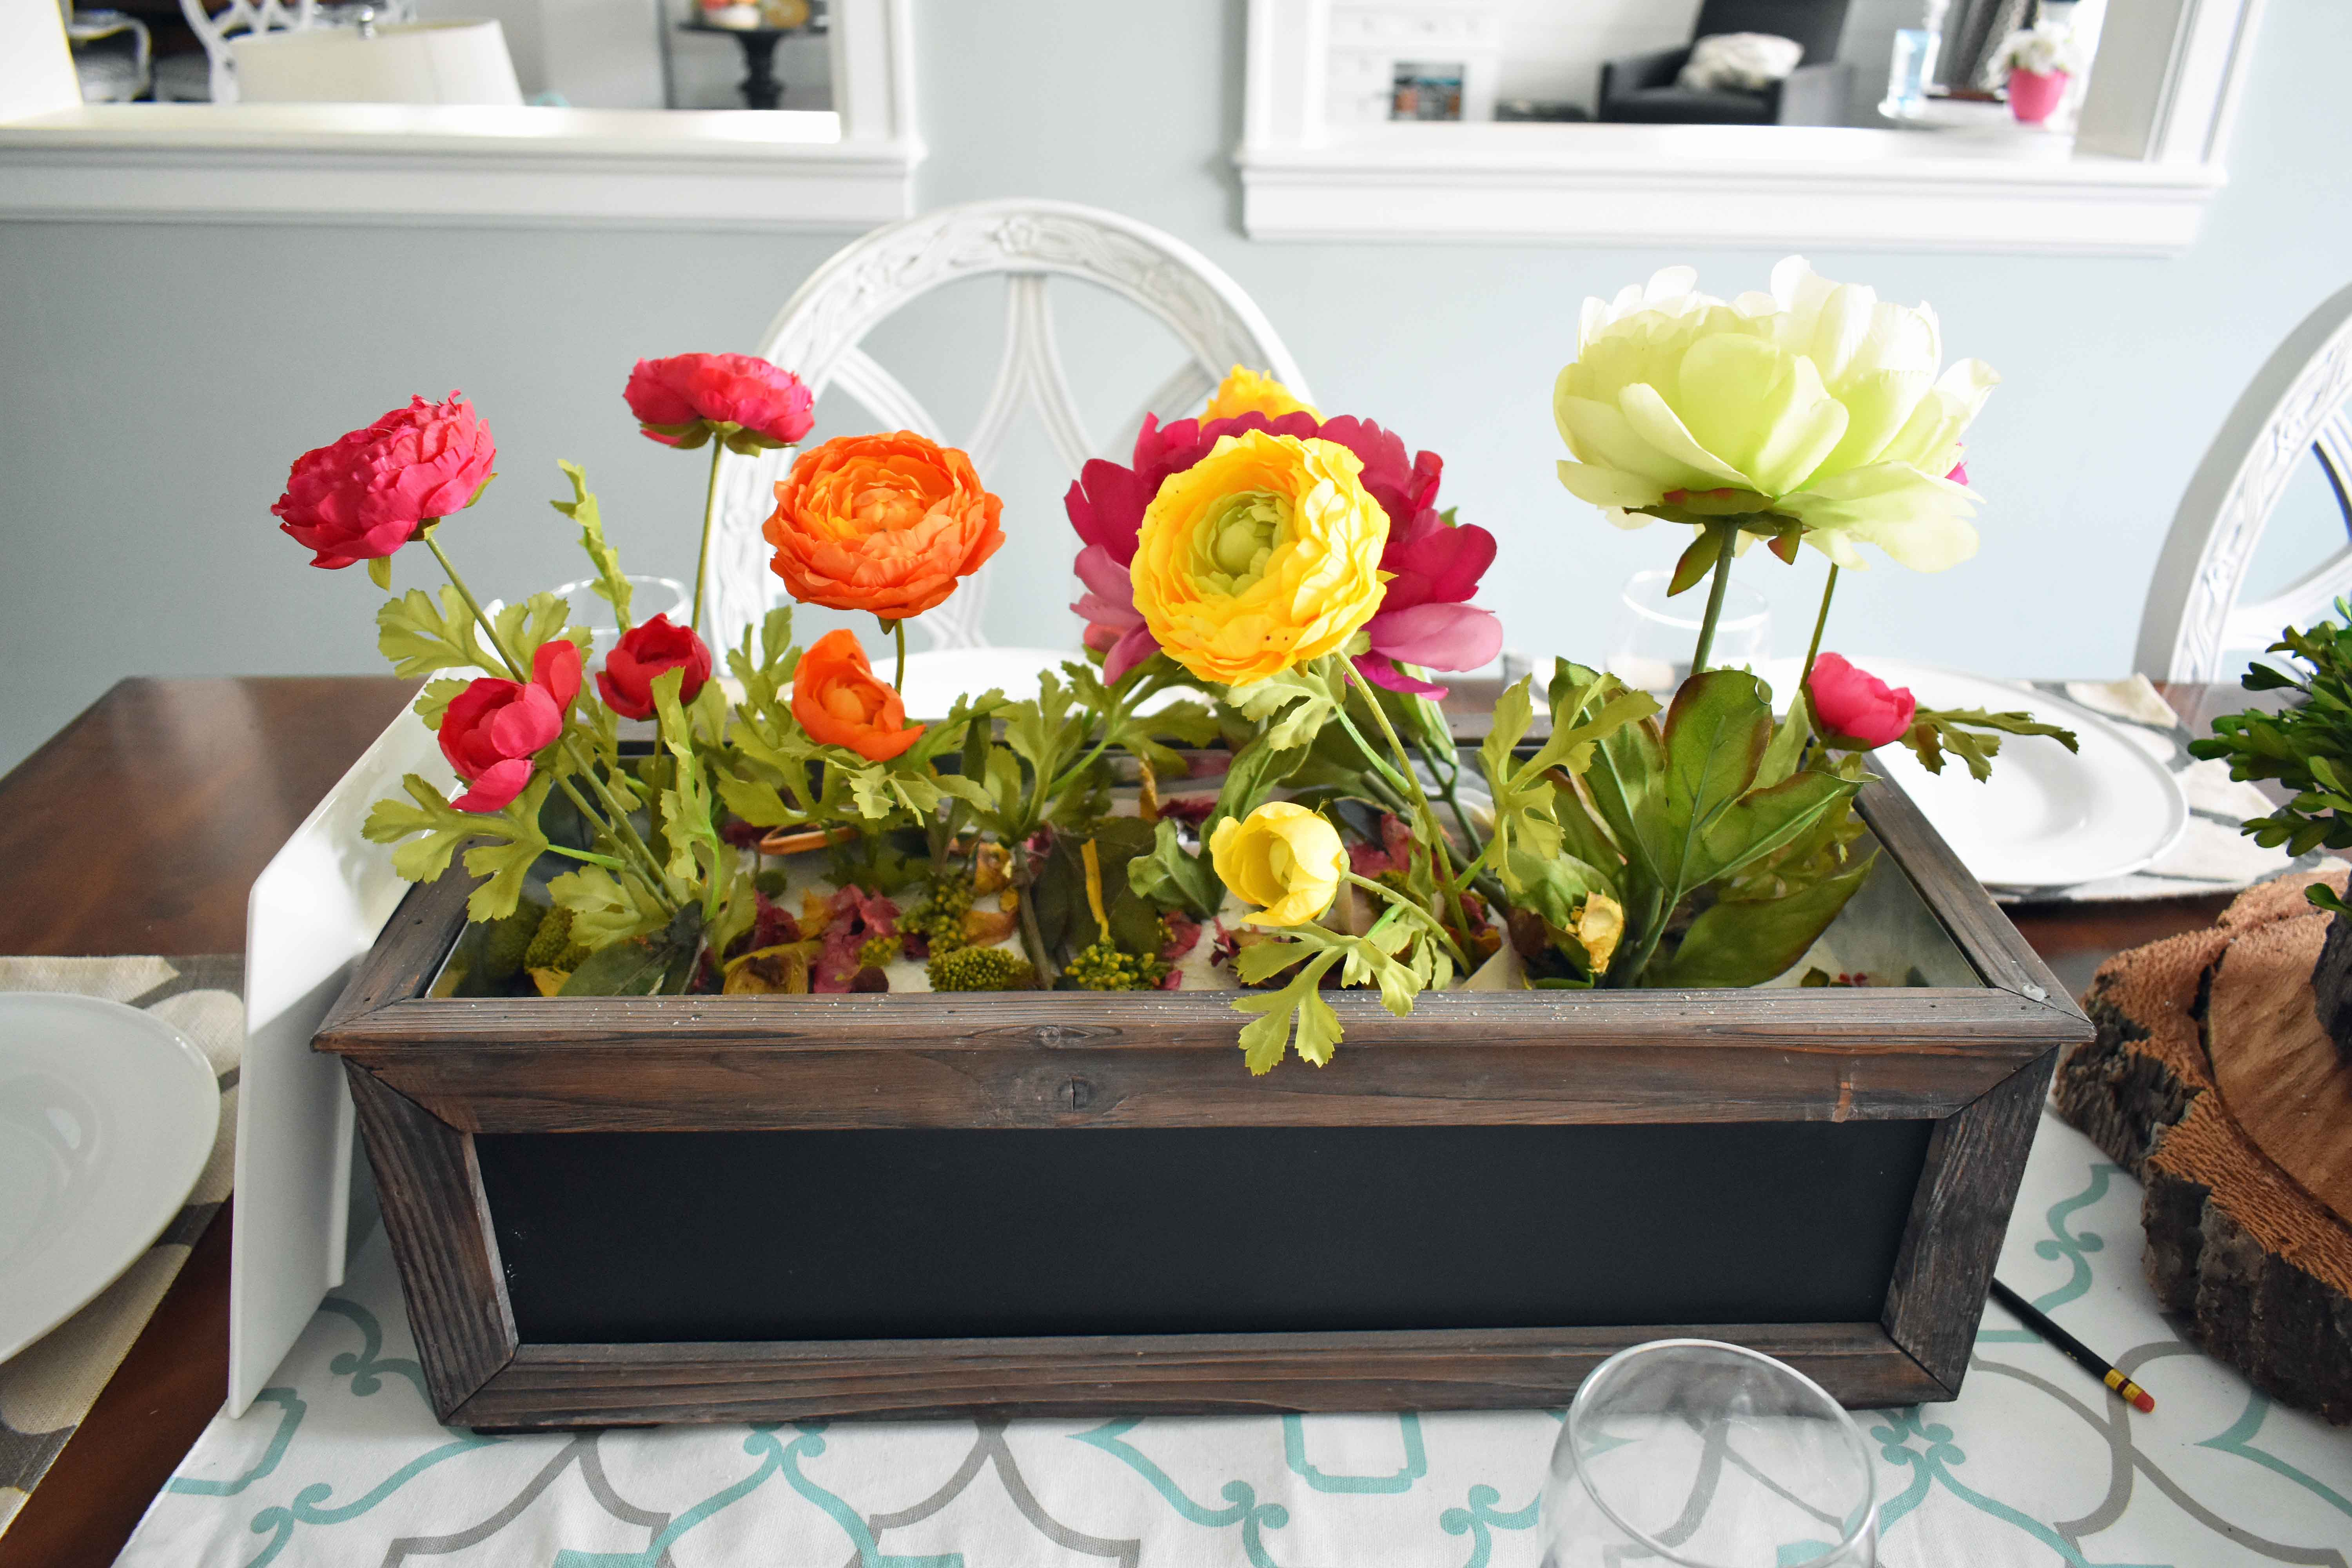 Spring Decoration Ideas. Easy floral tablescapes and bright decor ideas to bring light to your home.